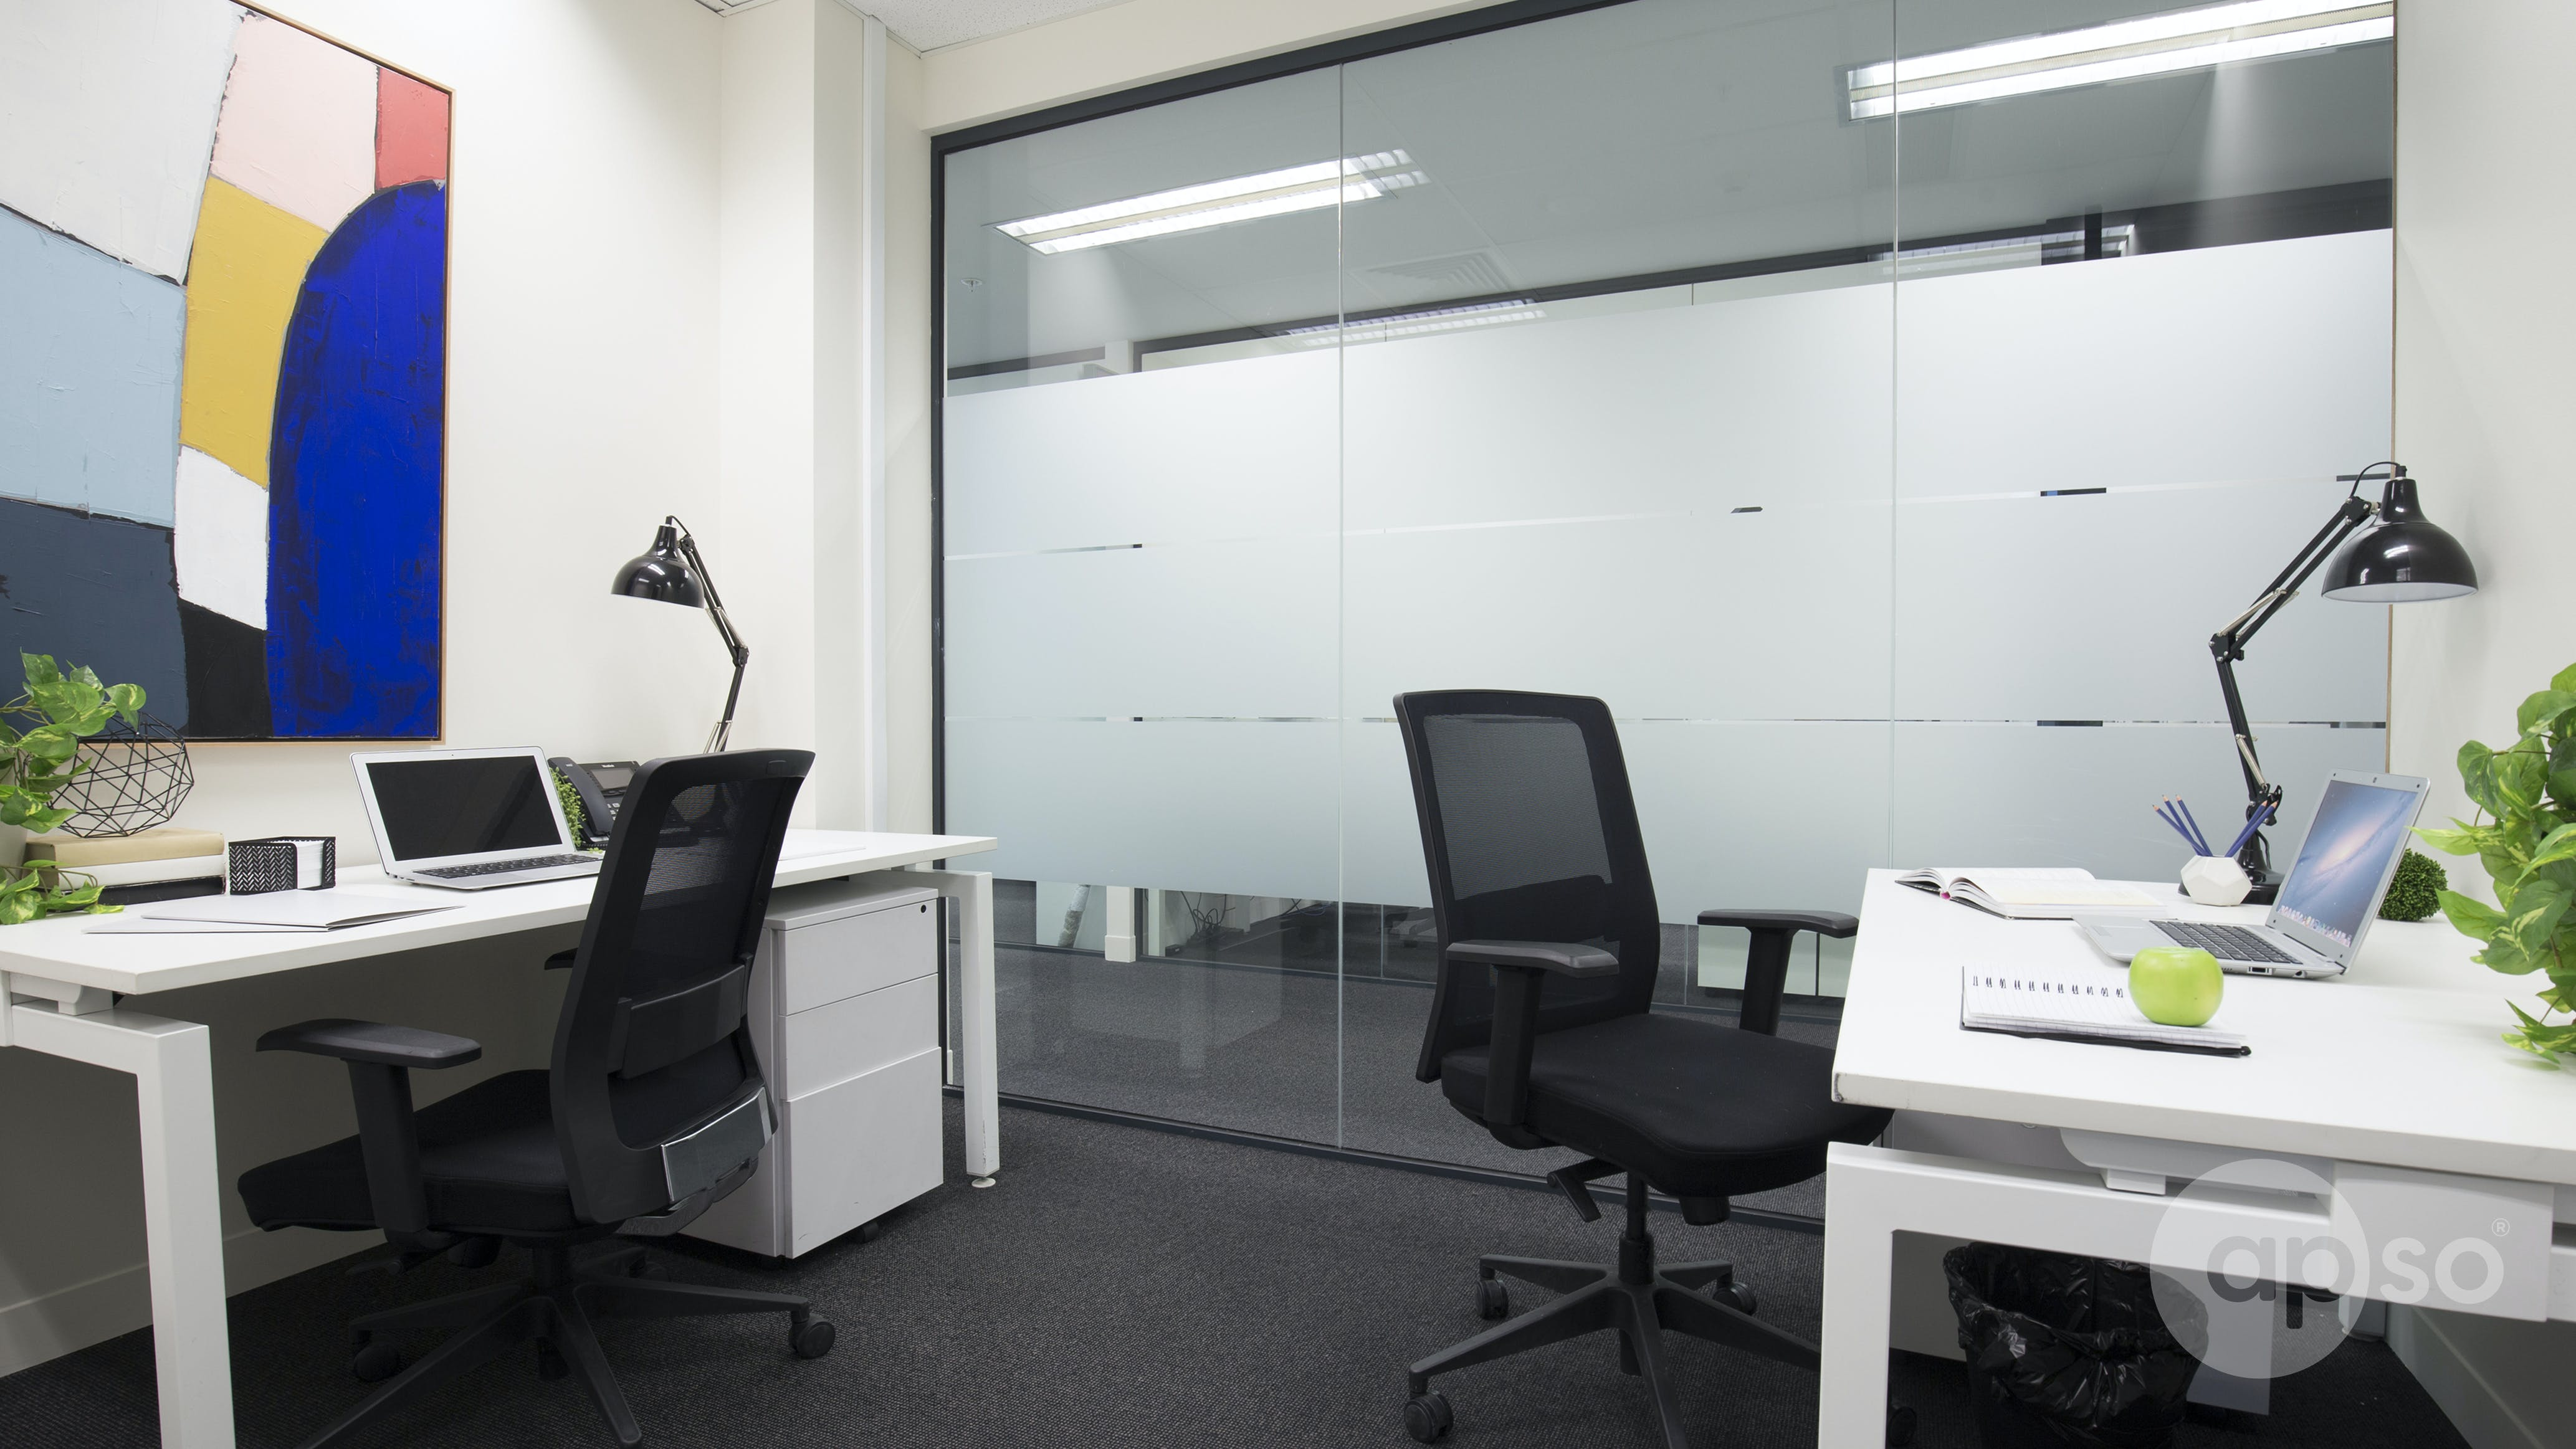 Suite 110j, private office at Corporate One, image 1